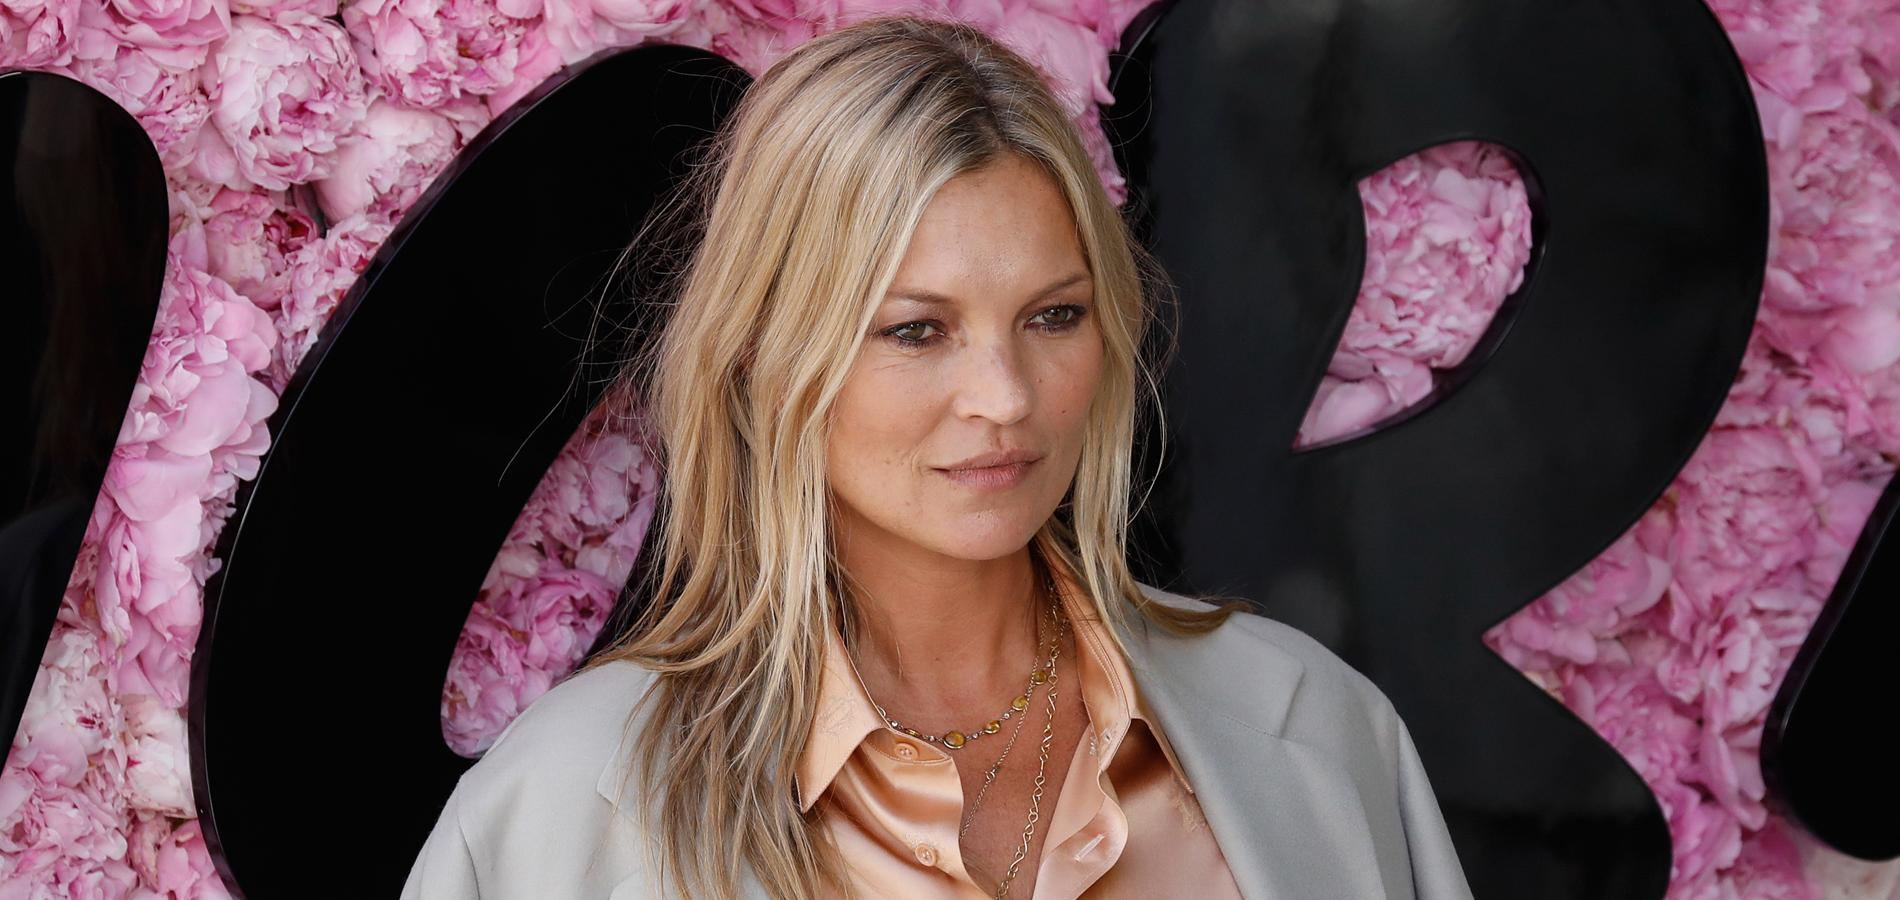 Page 6 - Kate Moss - Madame Figaro 8f1accd23cf